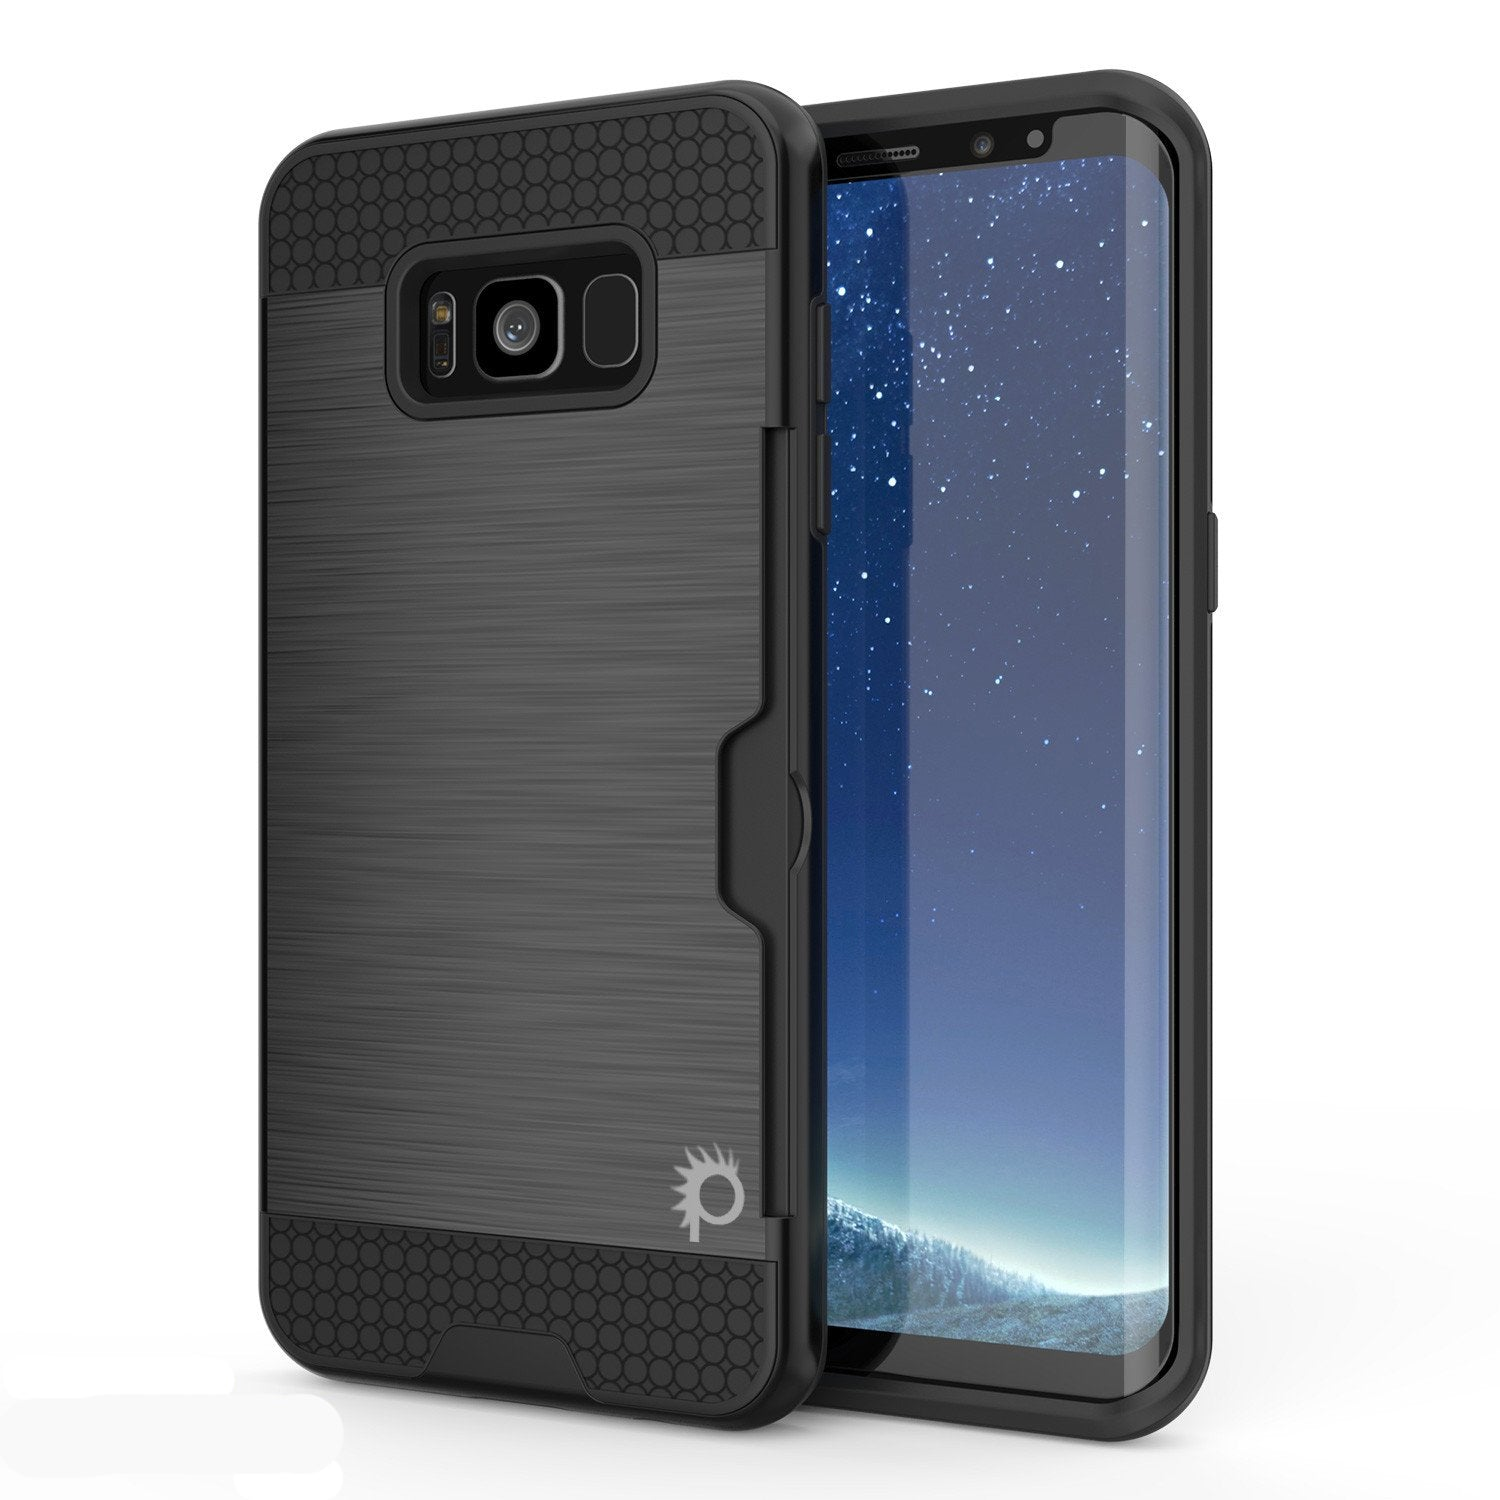 Galaxy S8 Case, PUNKcase [SLOT Series] Dual-Layer Armor Cover w/Integrated Anti-Shock System, Credit Card Slot & Screen Protector [Black]